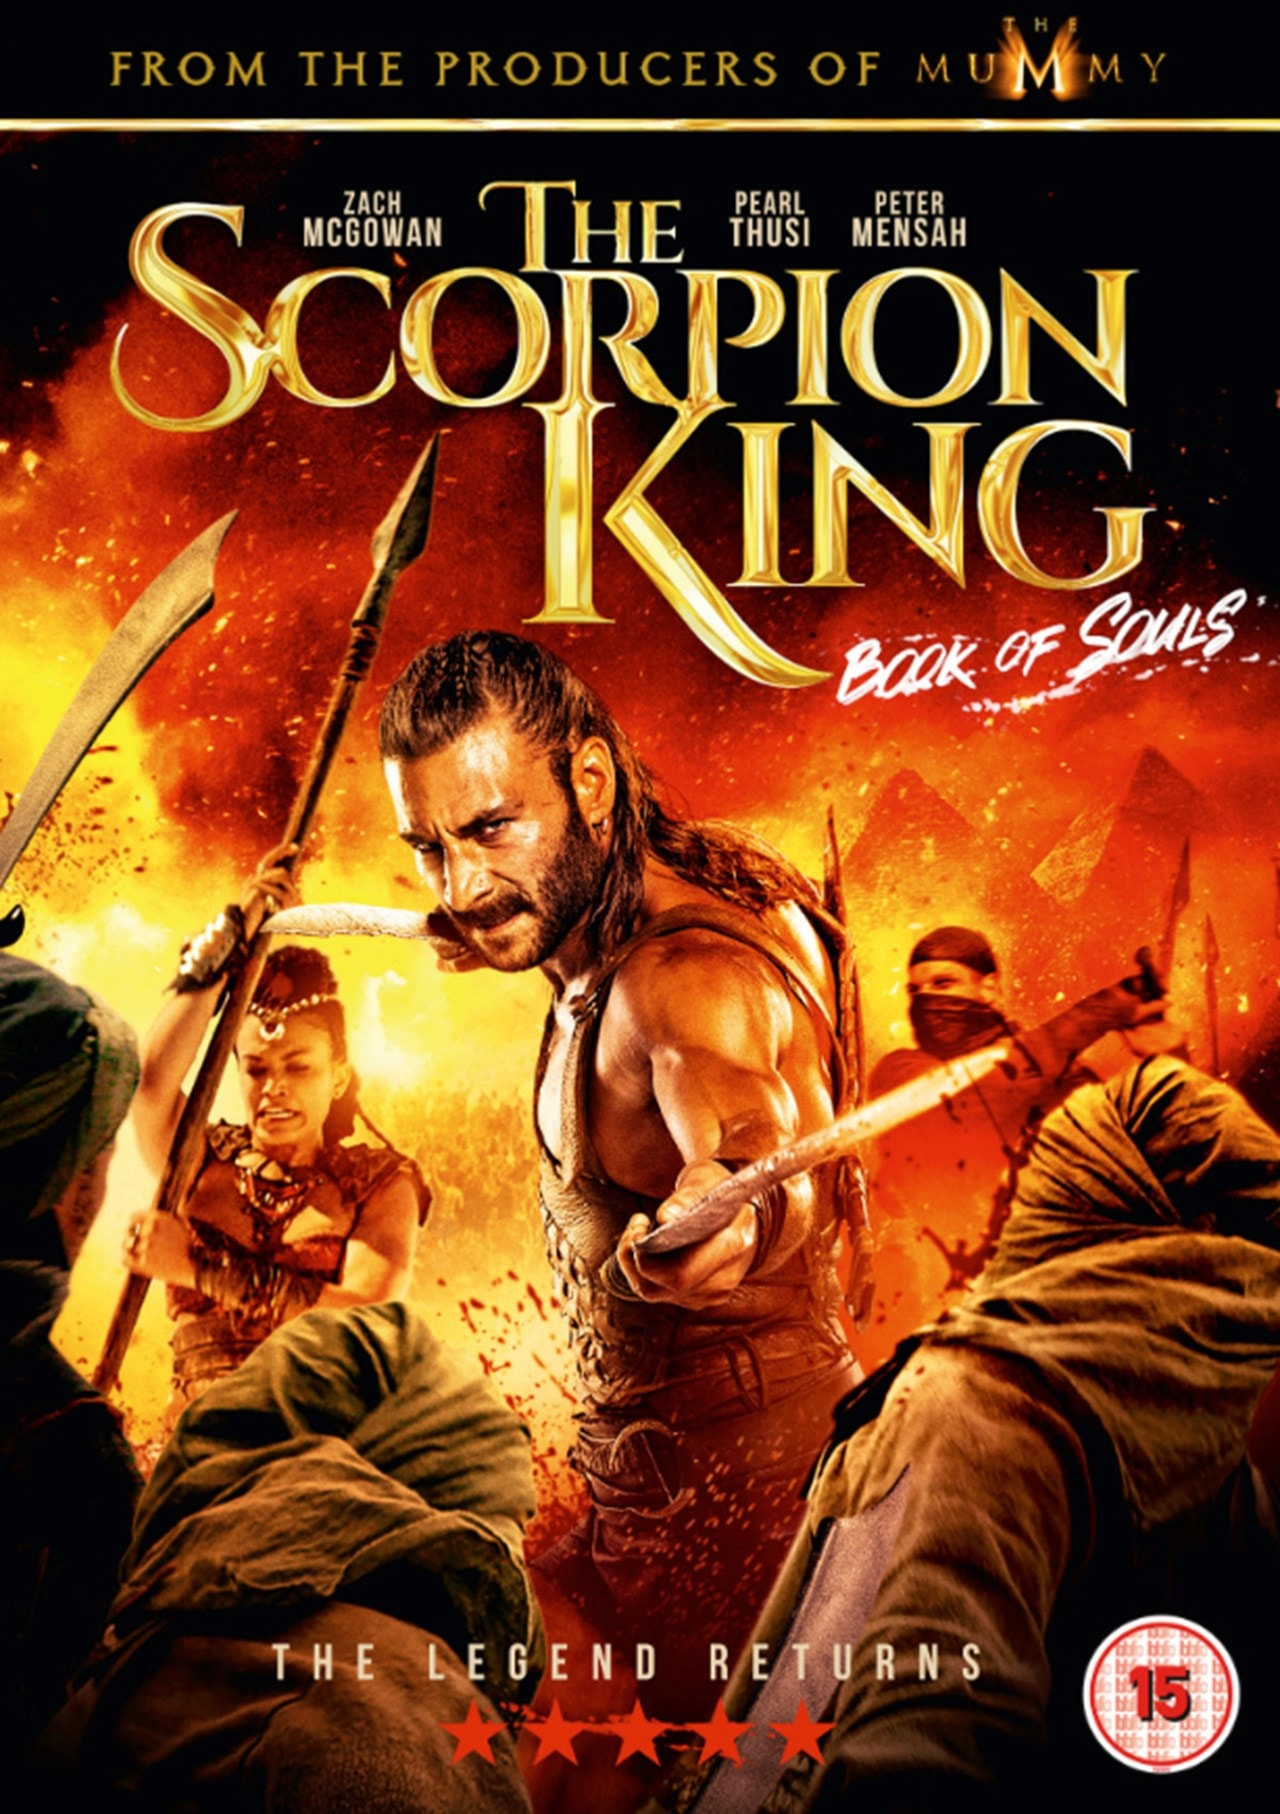 The Scorpion King - Book of Souls - 1